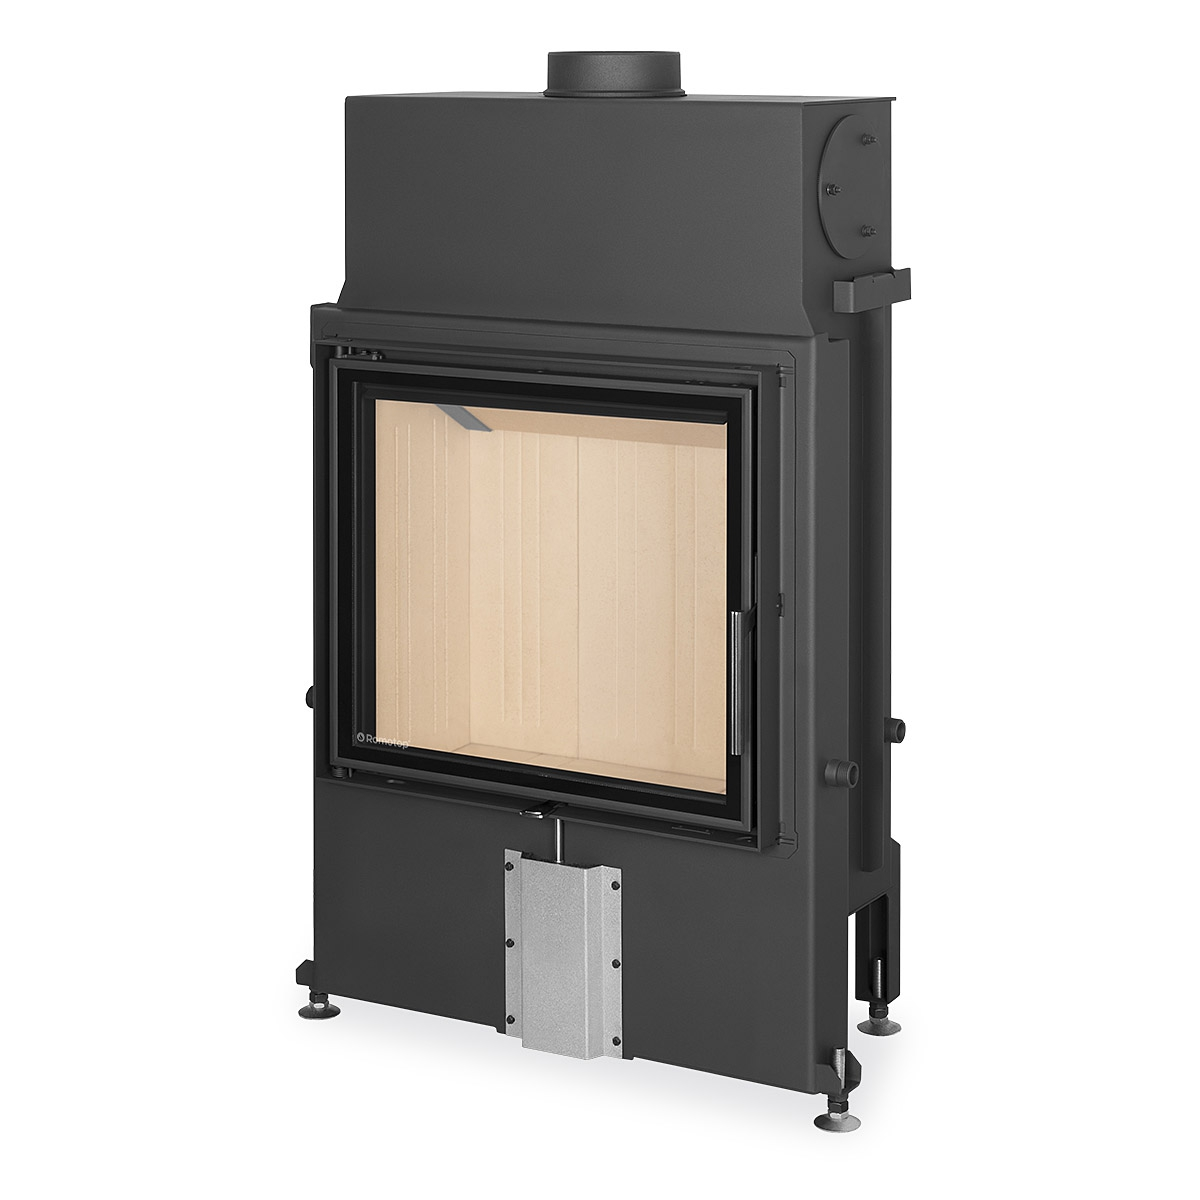 Insert Double Combustion Impression 2g 67 60 01 Fireplace Insert With Double Glazing